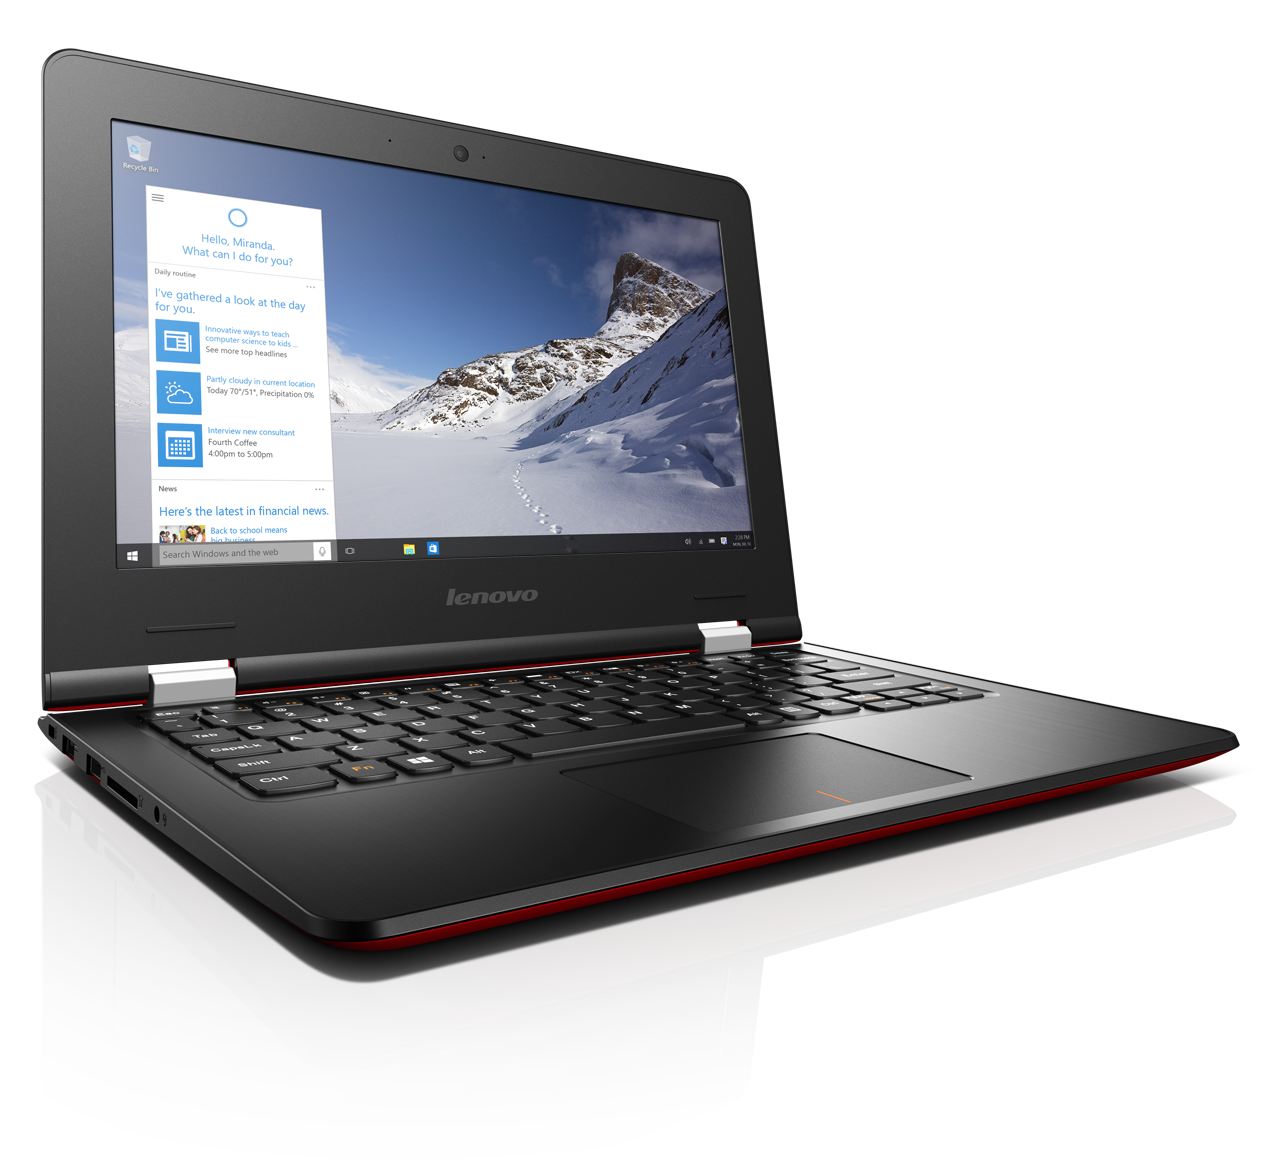 Lenovo Ideapad 300 And 300s Series Coming This October